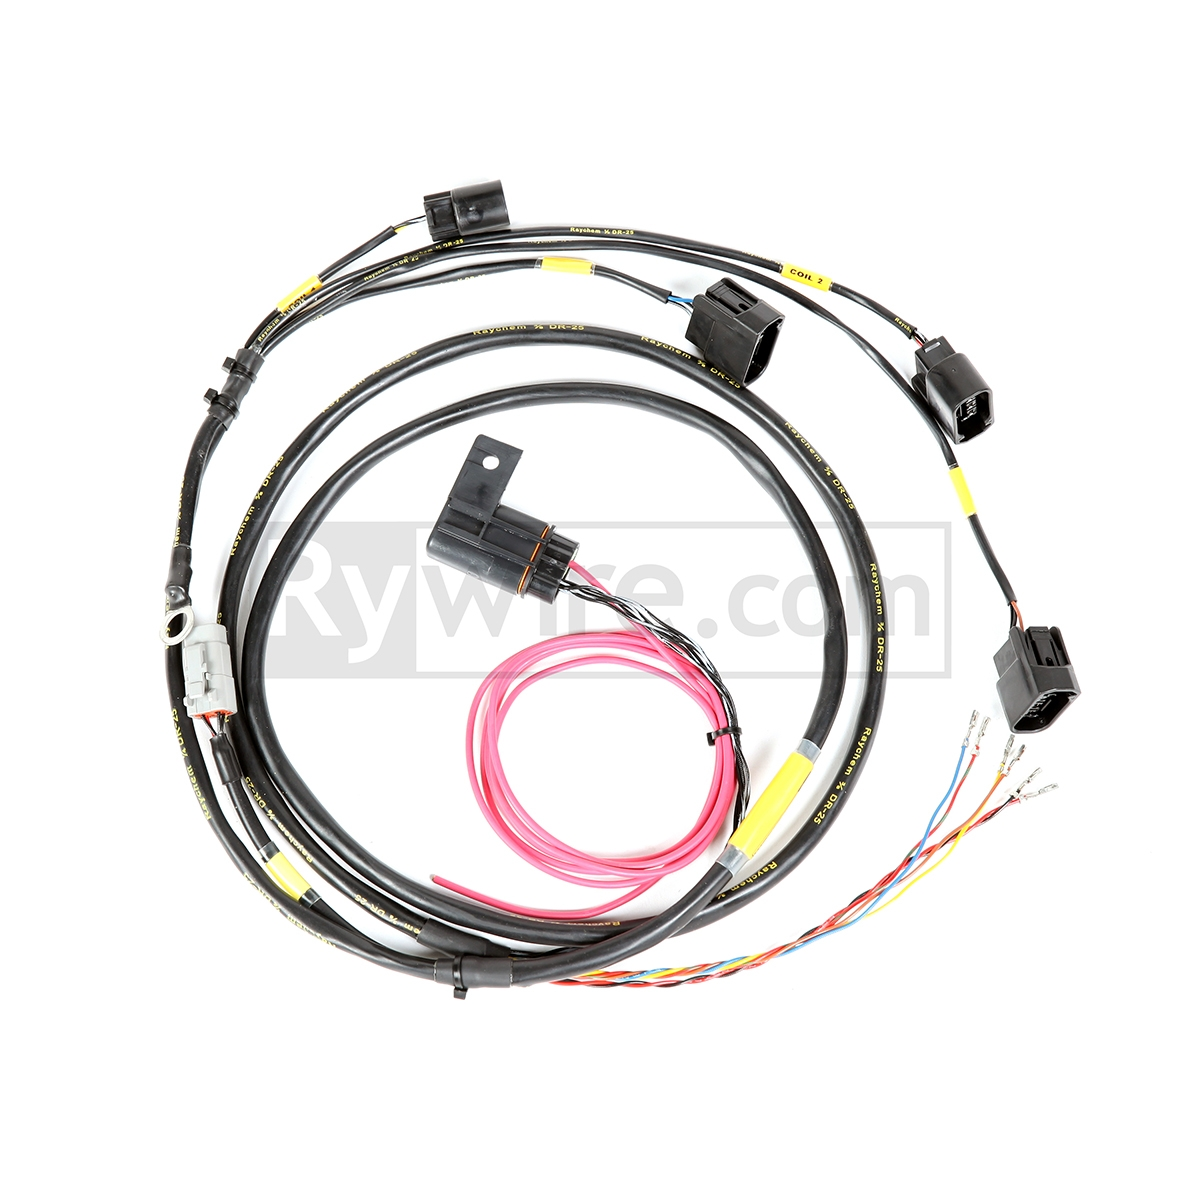 COP RSX S2000 coil harness 2?1402939111 rsx s2000 coil harness s2000 wiring harness at bayanpartner.co